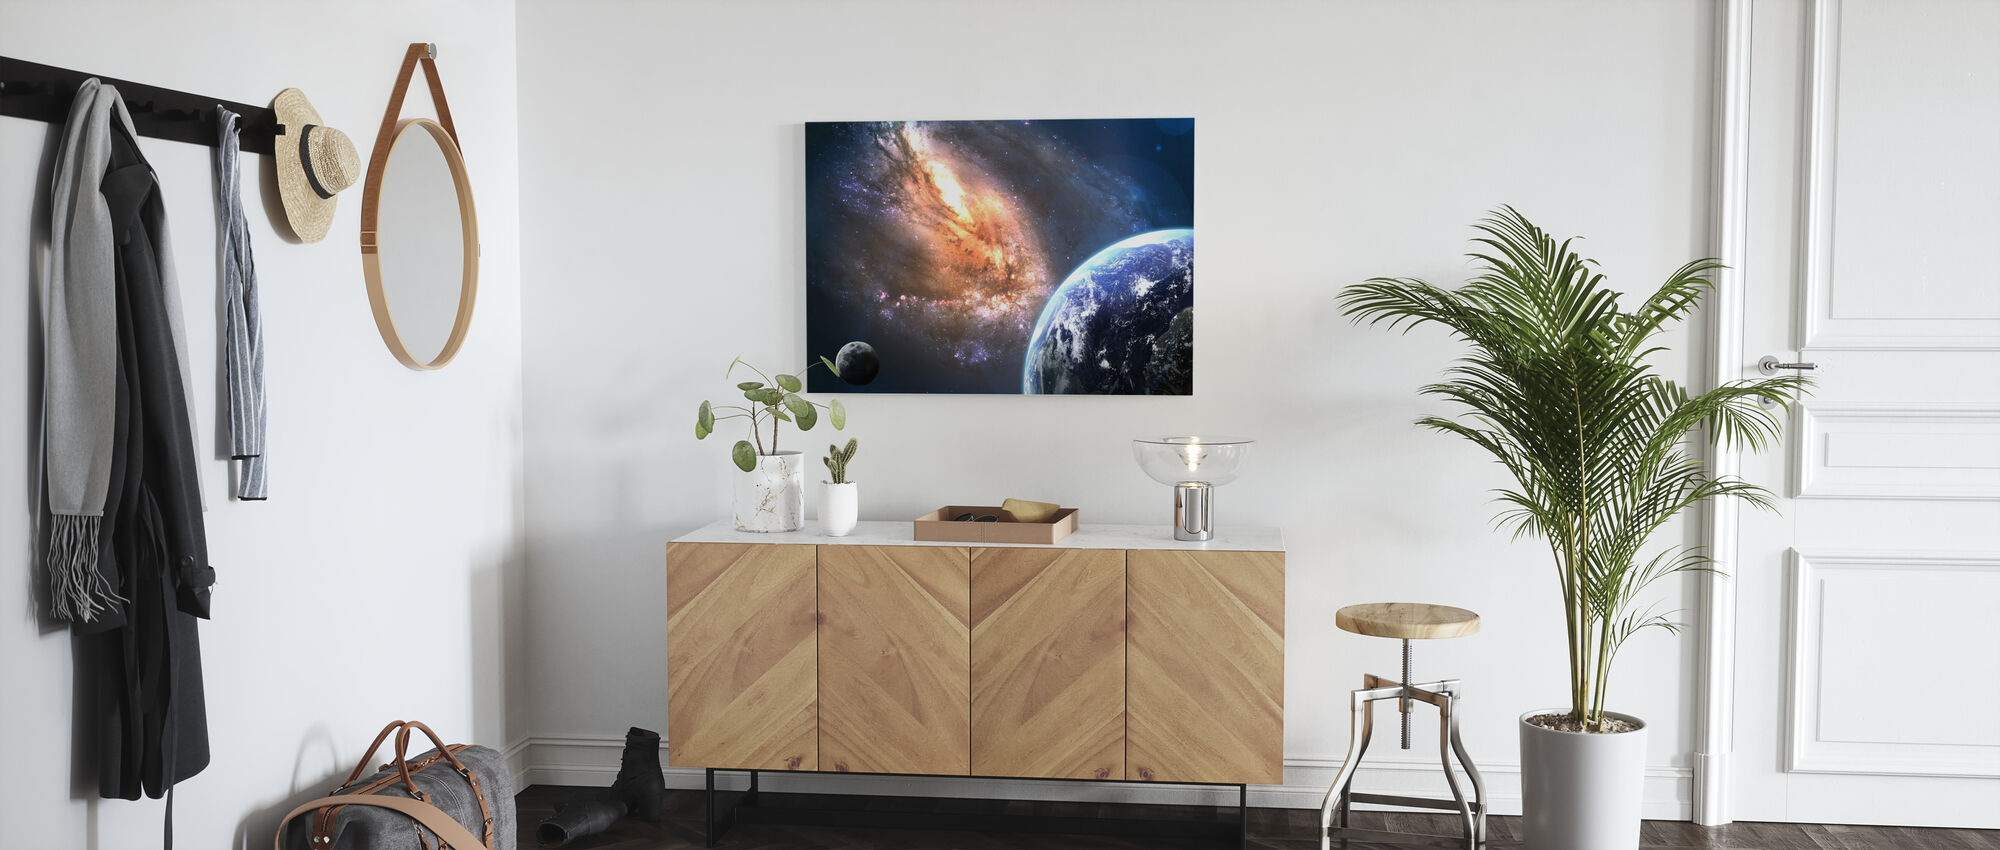 Aarde in de ruimte - Canvas print - Gang